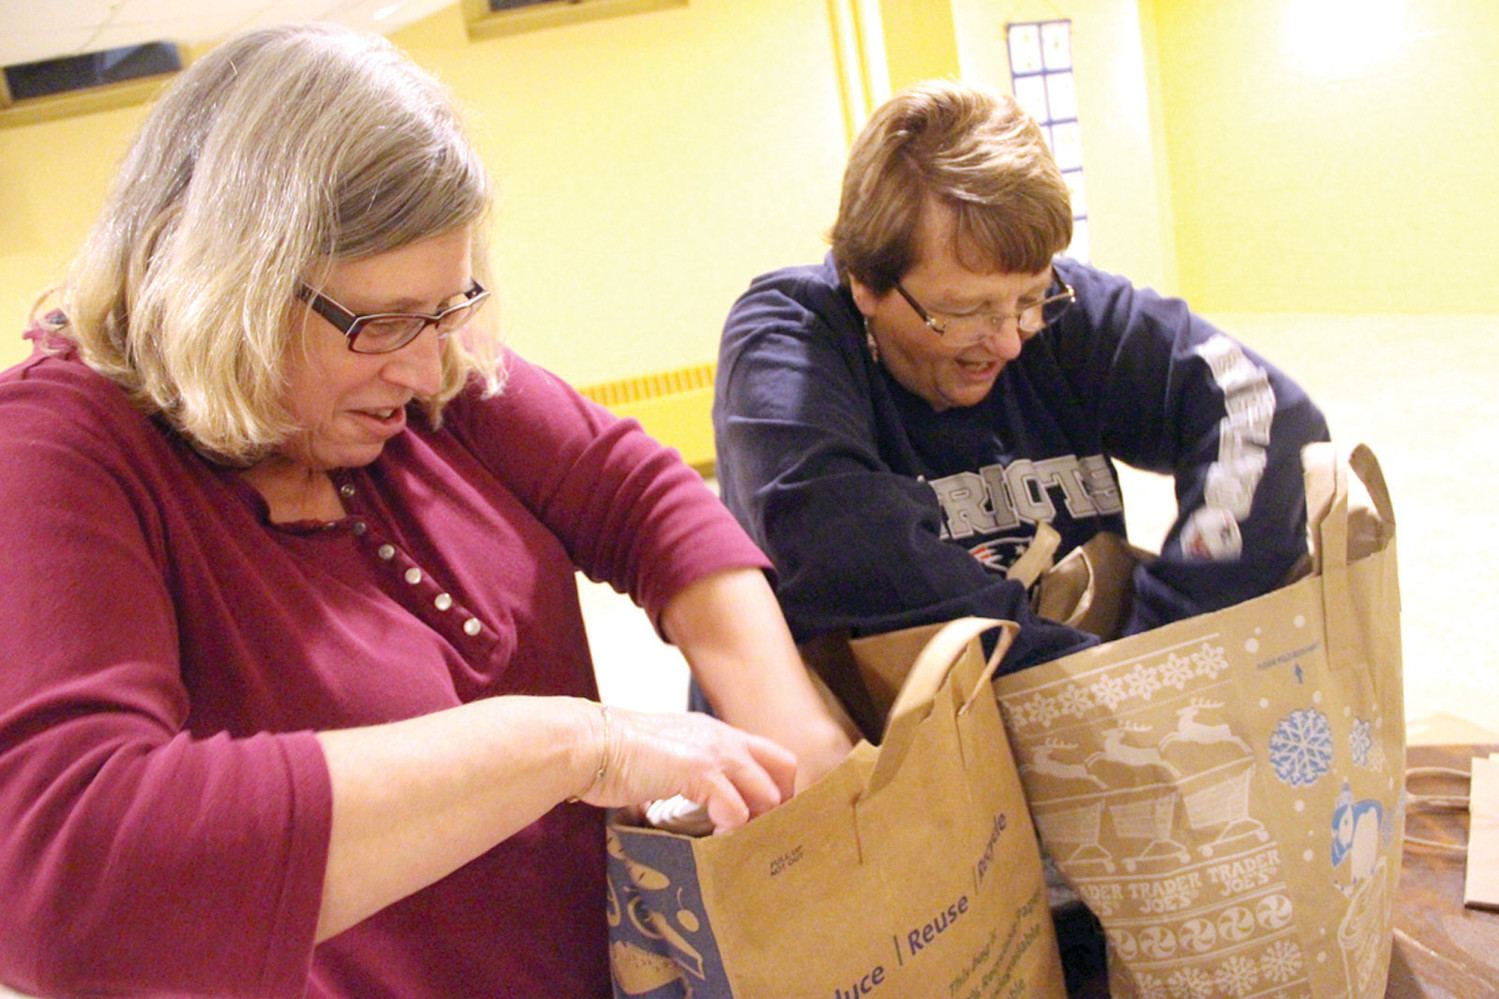 WHAT GOES IN FIRST: Juliette Demers and pastoral minister Cheryl Berube place canned goods in the bottom of bags that were next filled with produce, bread and boxed goods.